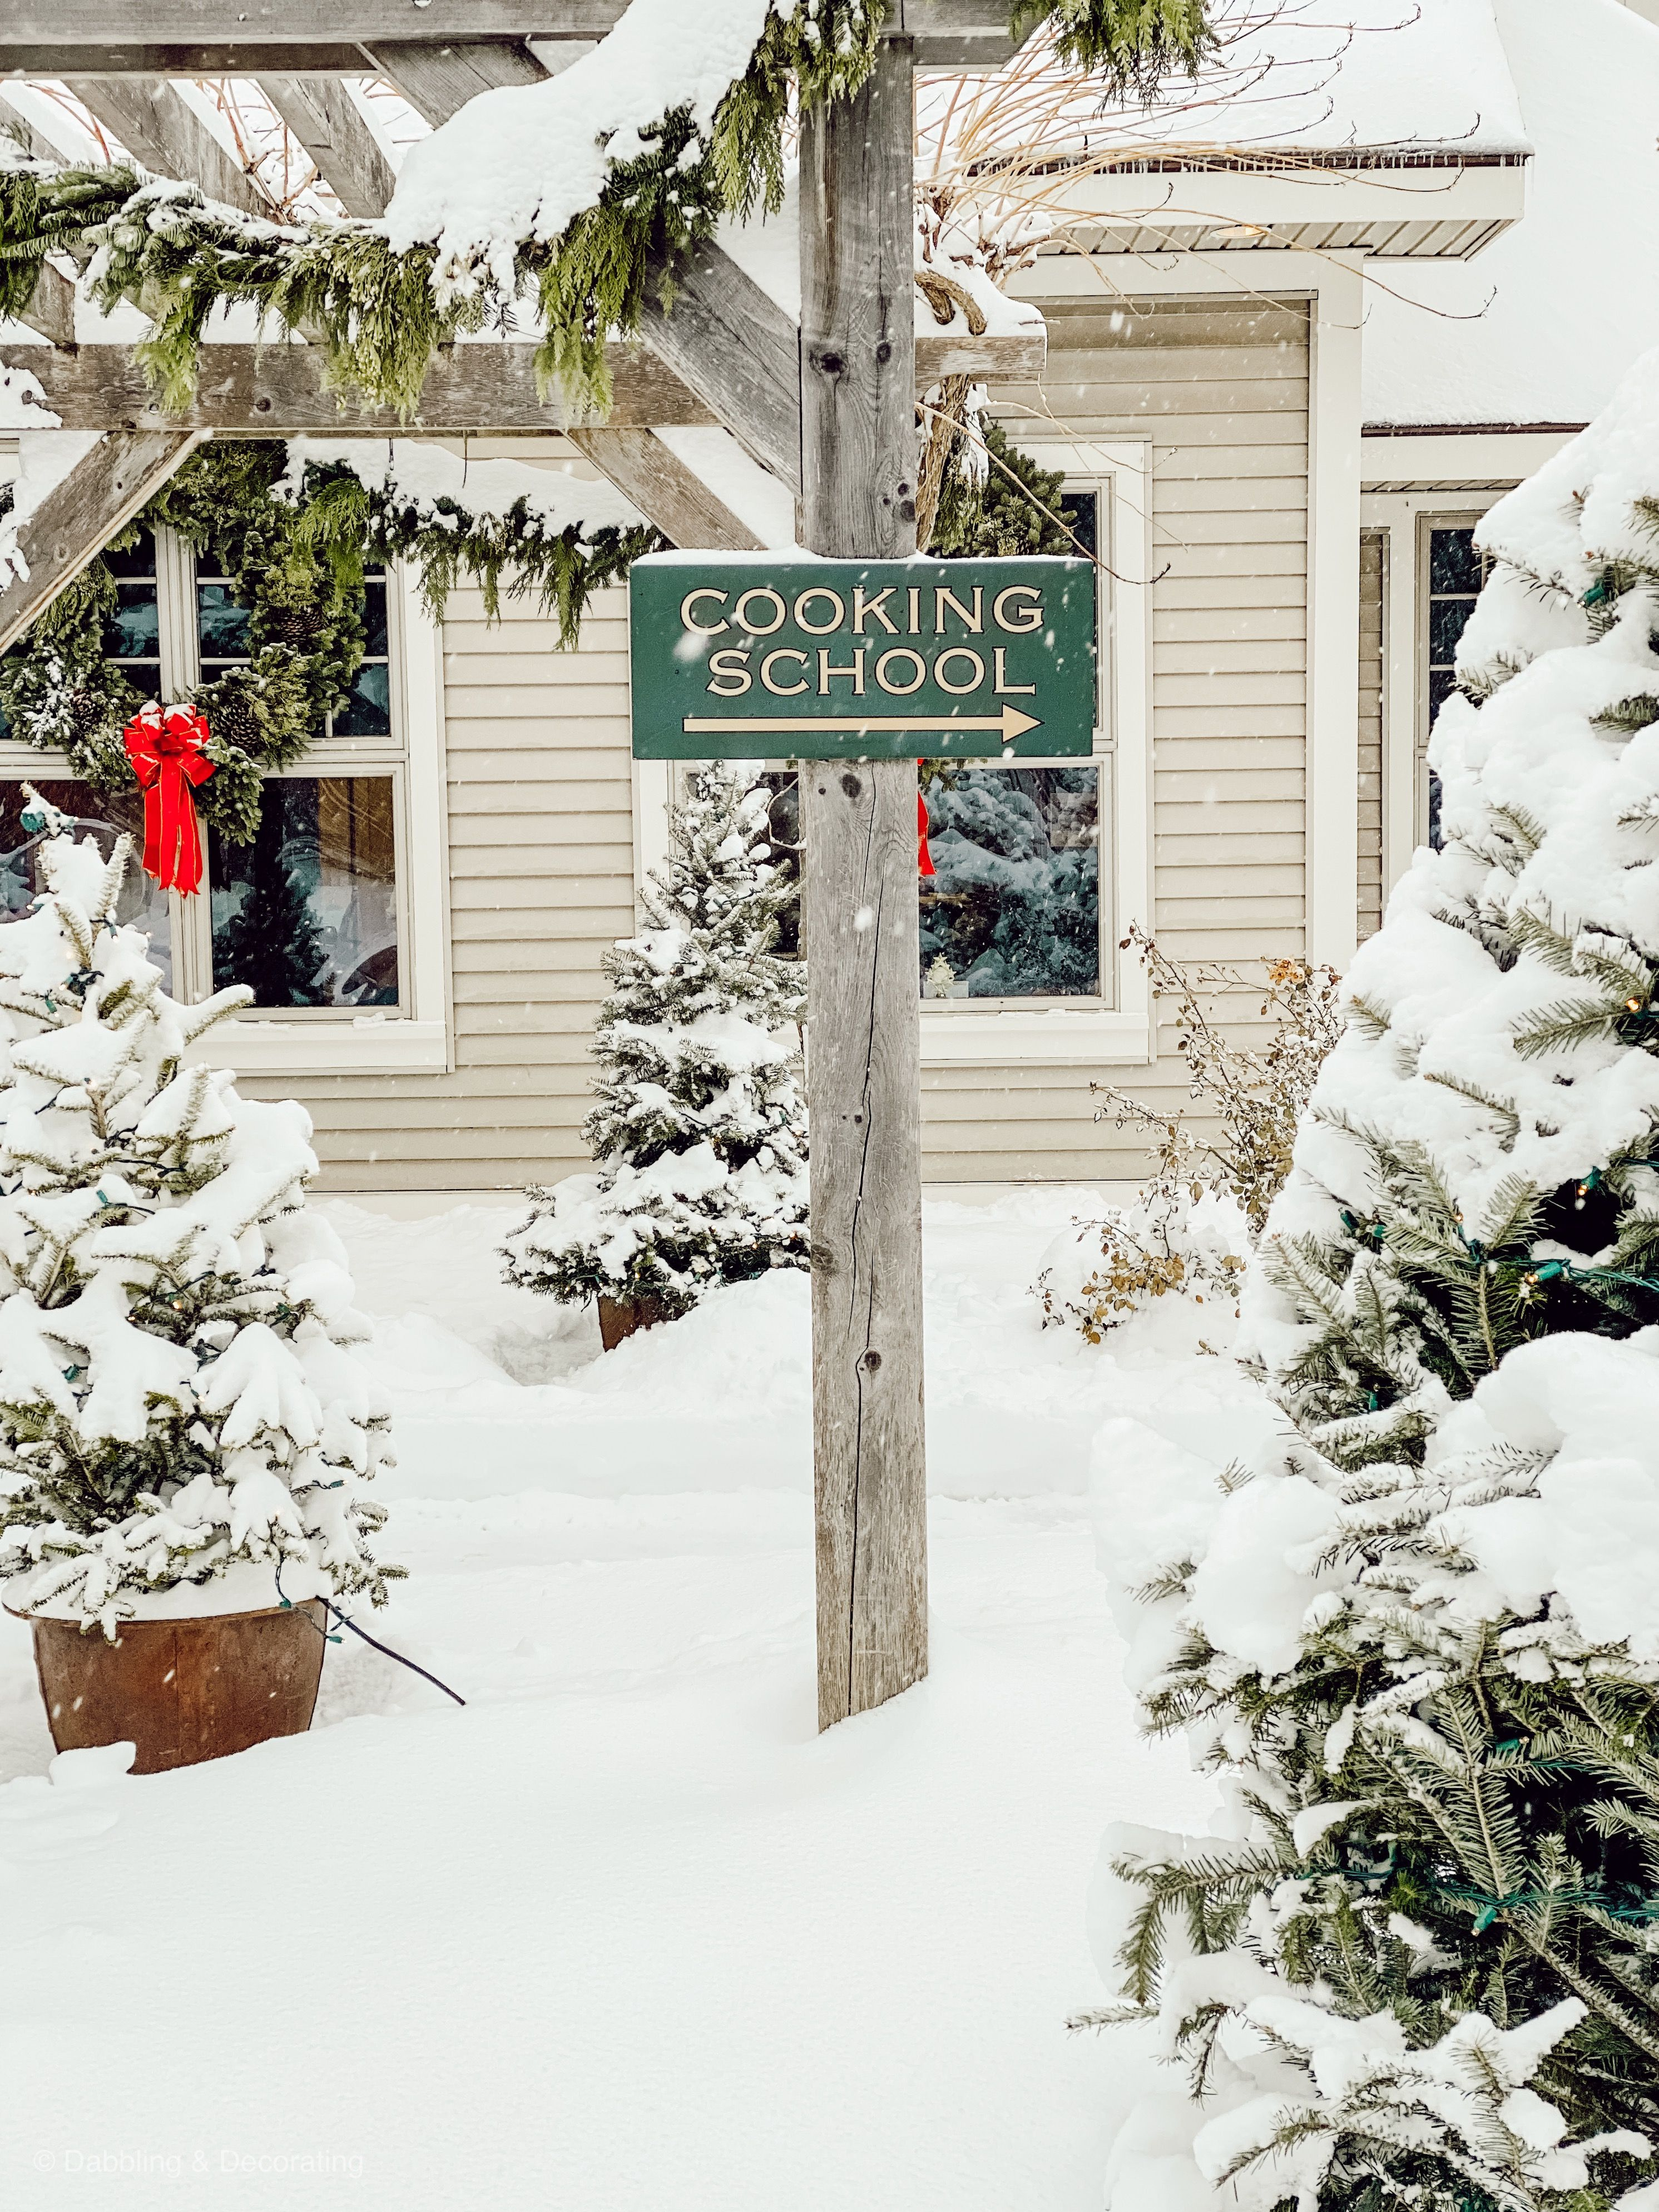 Stonewall Kitchen Is A Leading Specialty Food Producer Headquartered In York Maine I Love Their Food Recipes